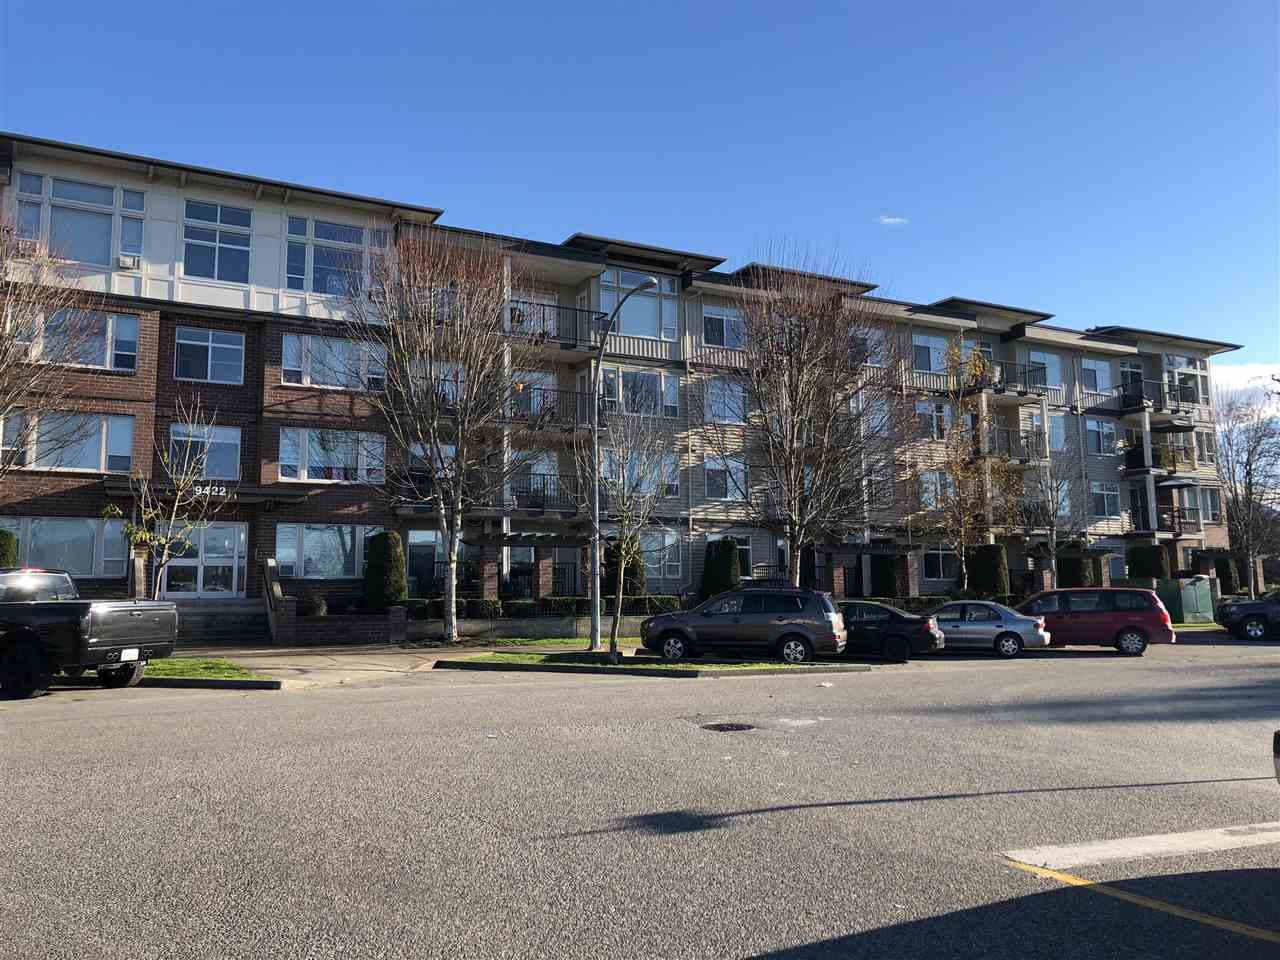 Superb one bedroom condo in move in condition with its own patio. Large master bedroom with walk through closet to main bath with shower. Good size kitchen with eating bar. Nice living room area with lots of light and leading to a large patio area. Excellent for the first time buyer or investor with rentals allowed. Great central location close to all shops, amenities, and schools.